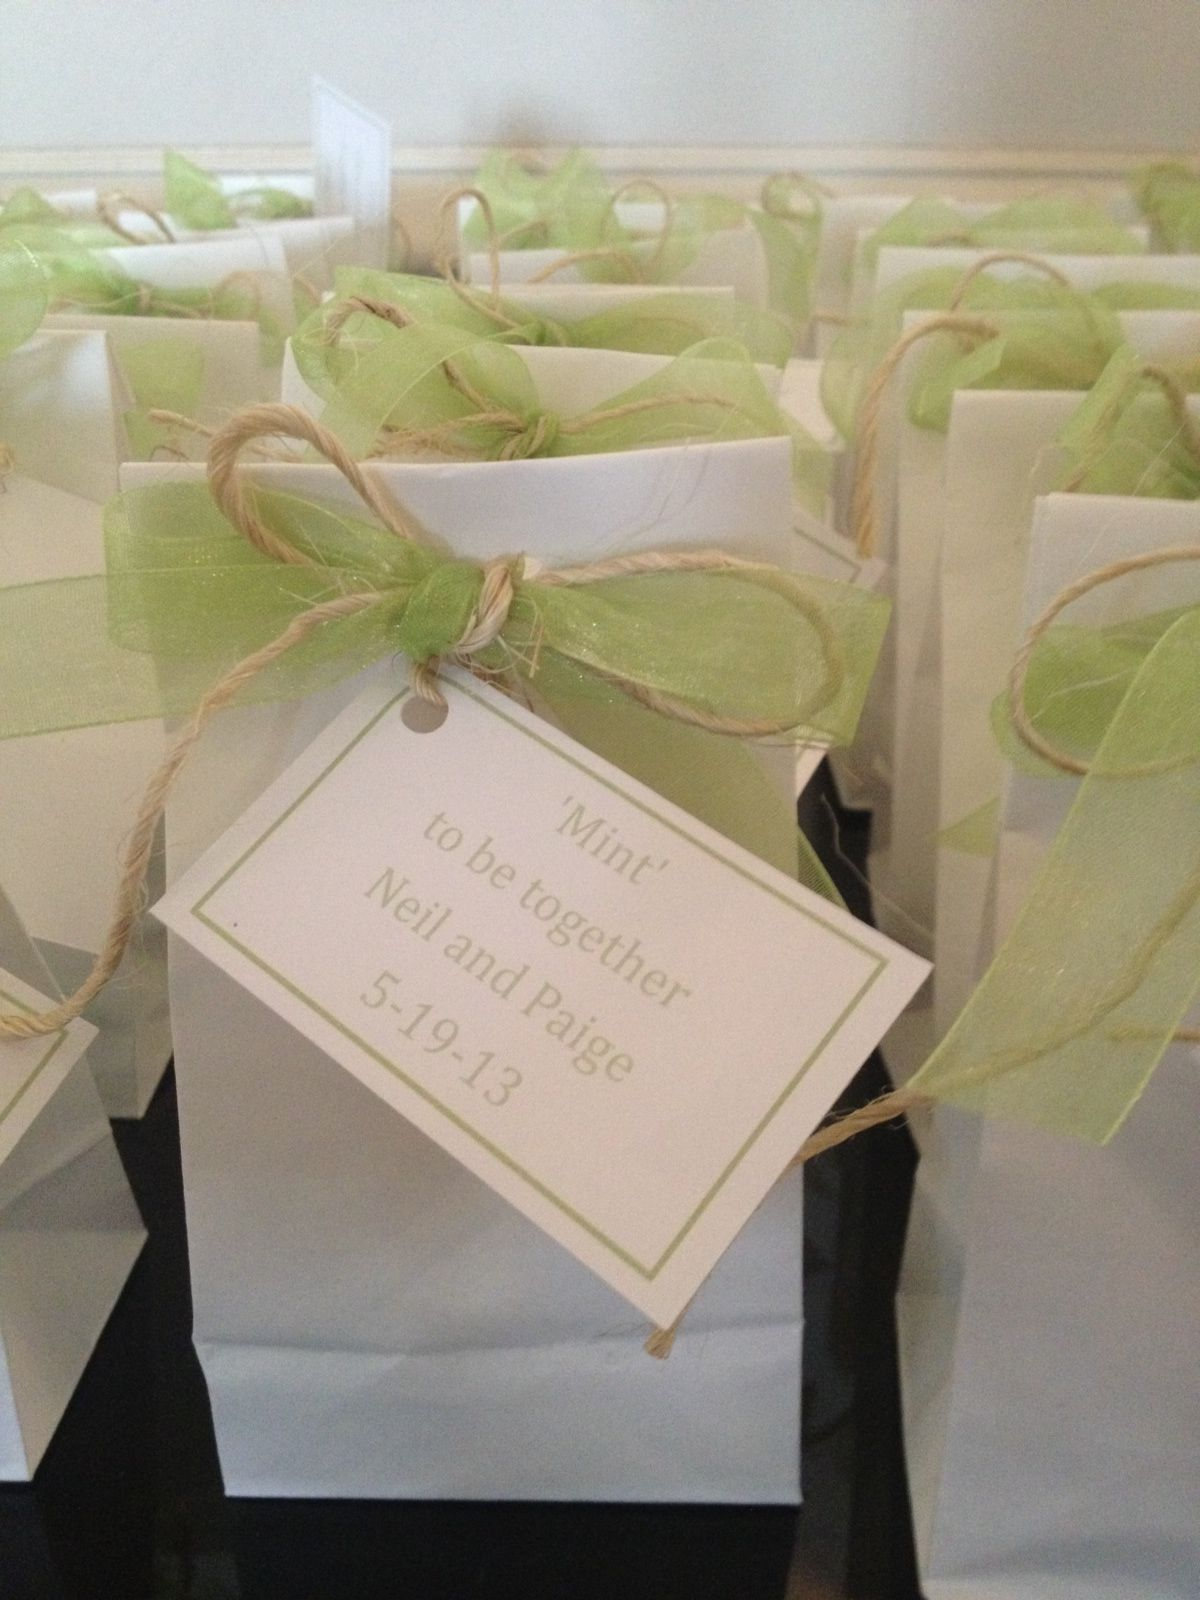 Wedding Rehearsal Dinner Gifts: Rehearsal Dinner Favor Bags Filled With Assorted Mints